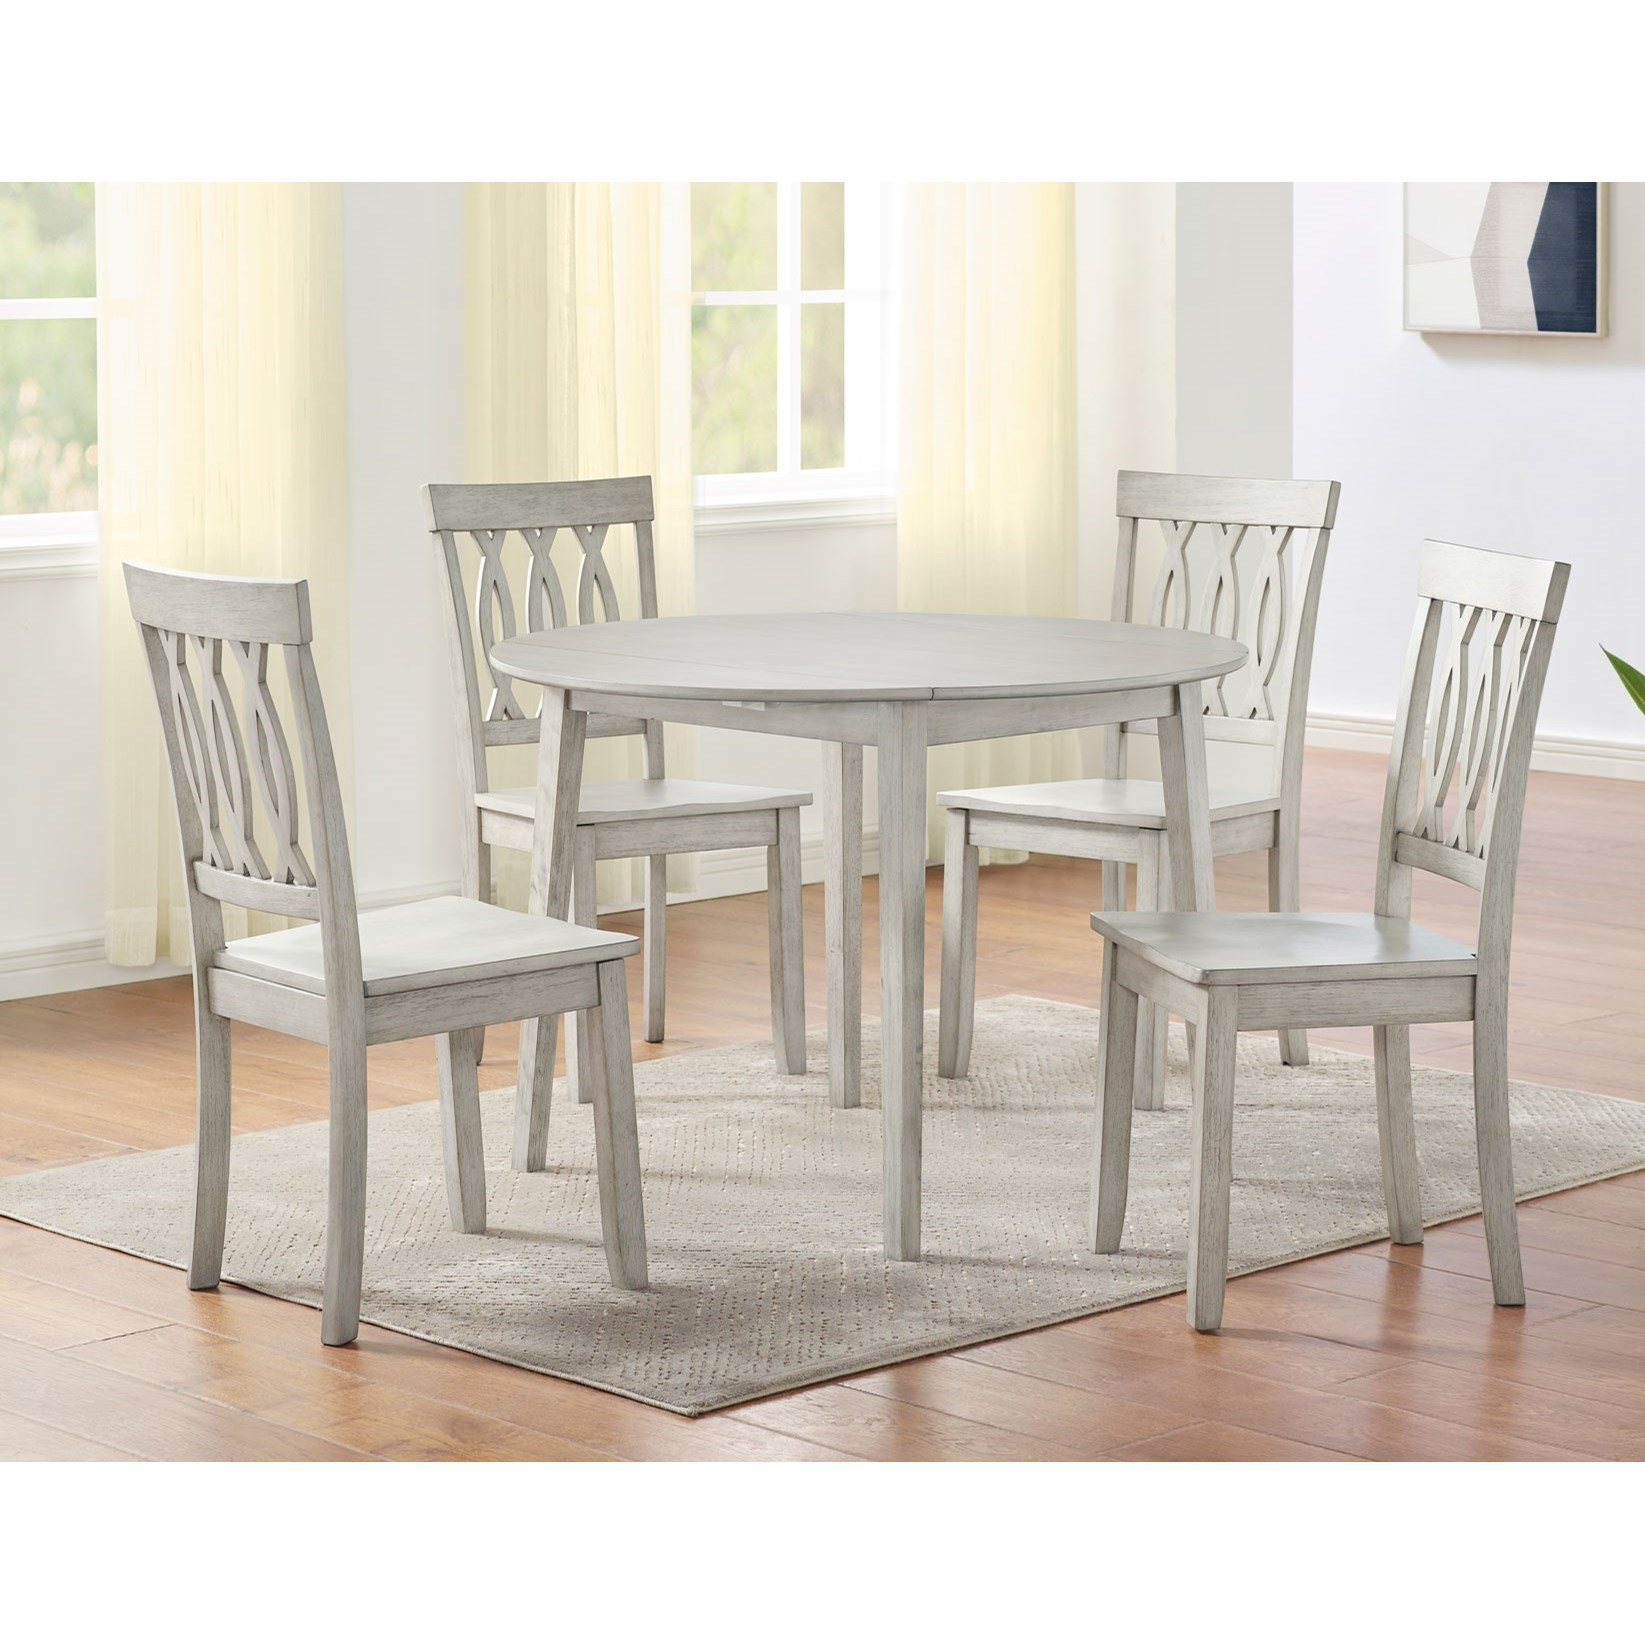 Naples 5-Piece Drop-Leaf Dining Set by Steve Silver at Wilcox Furniture